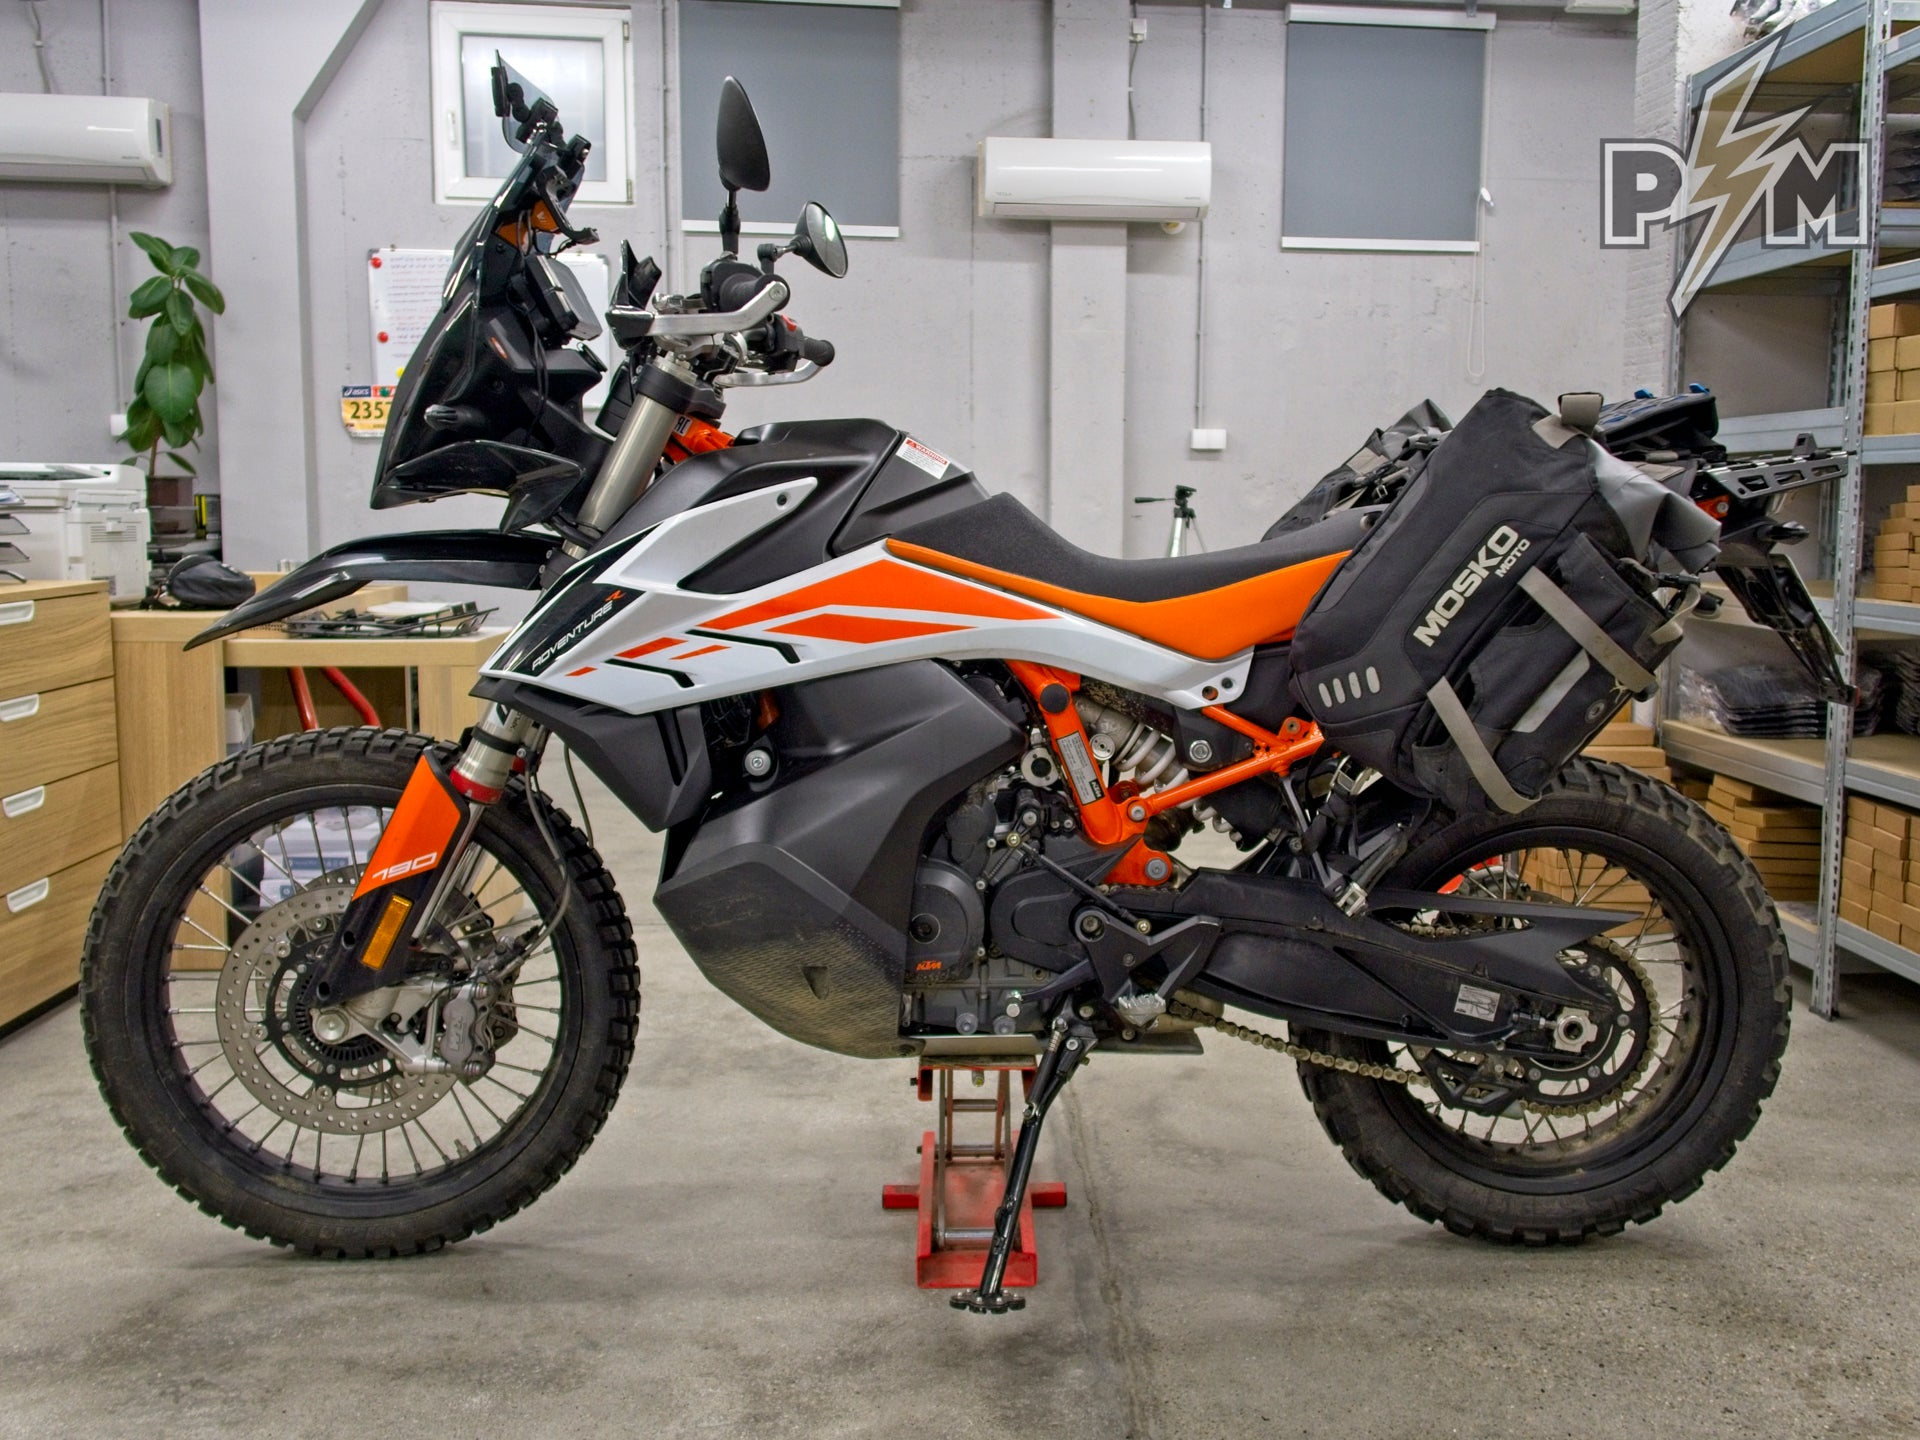 Mosko moto Reckless 80 Revolver on KTM 790 Adventure R